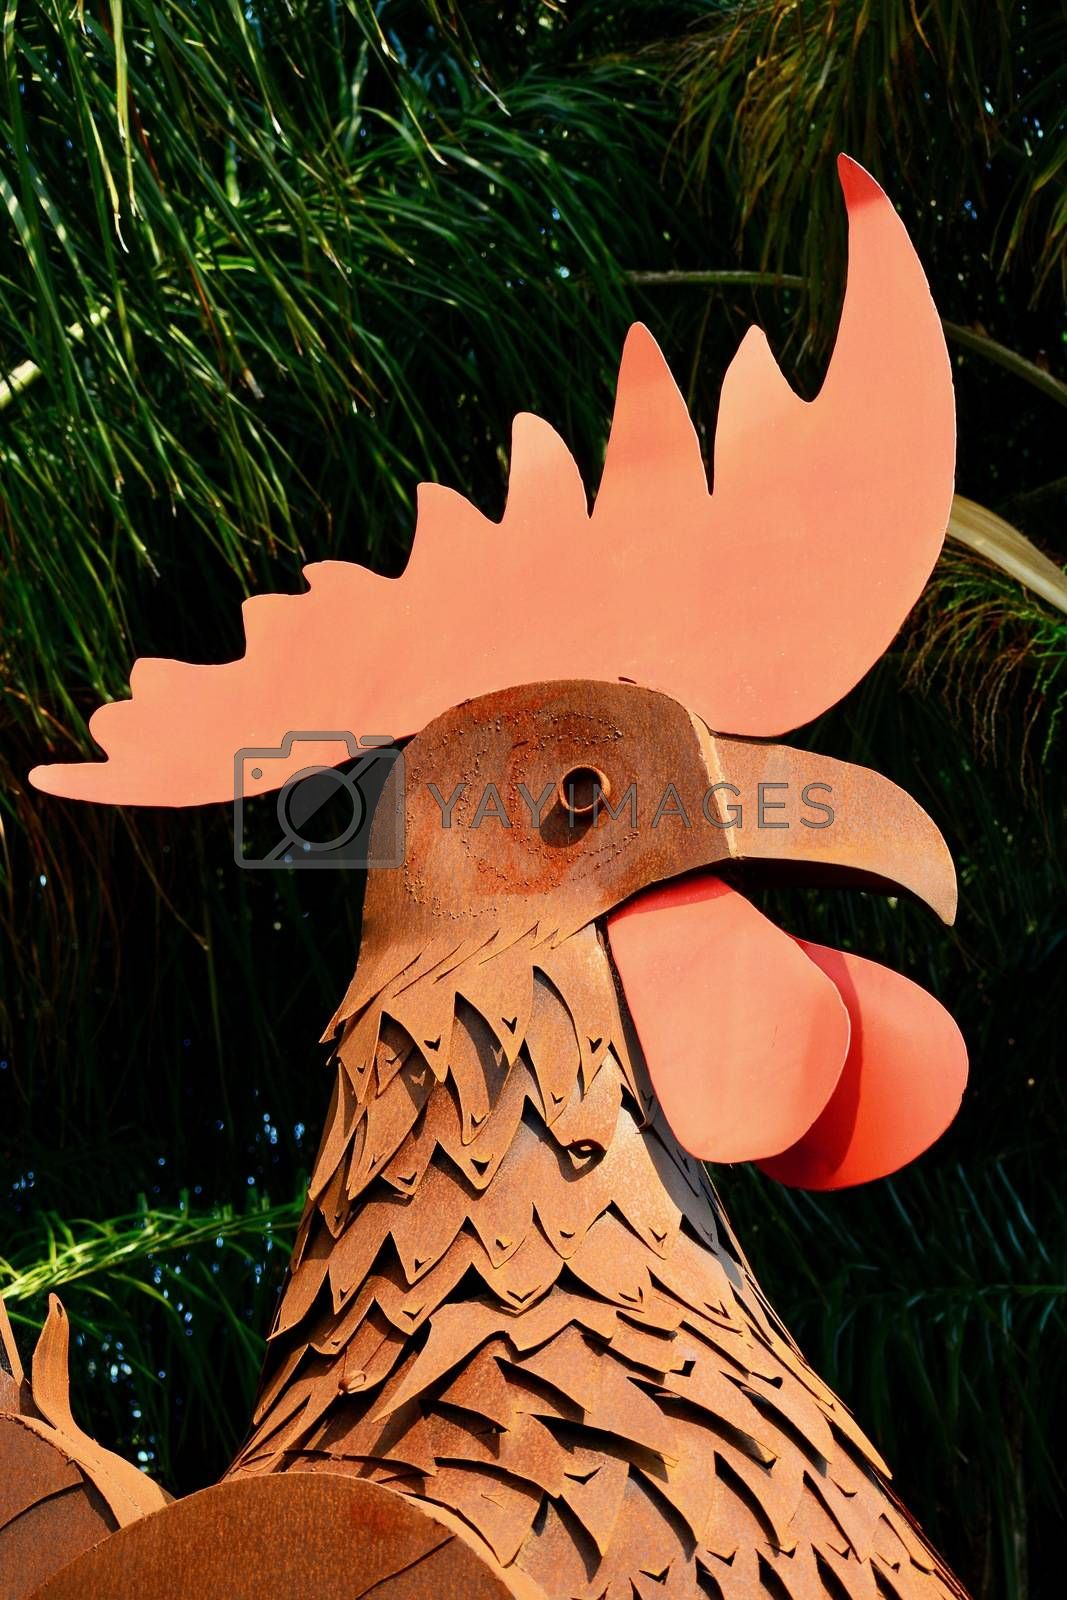 Funny garden sculpture representing a rooster. Rusty metal as its building element.